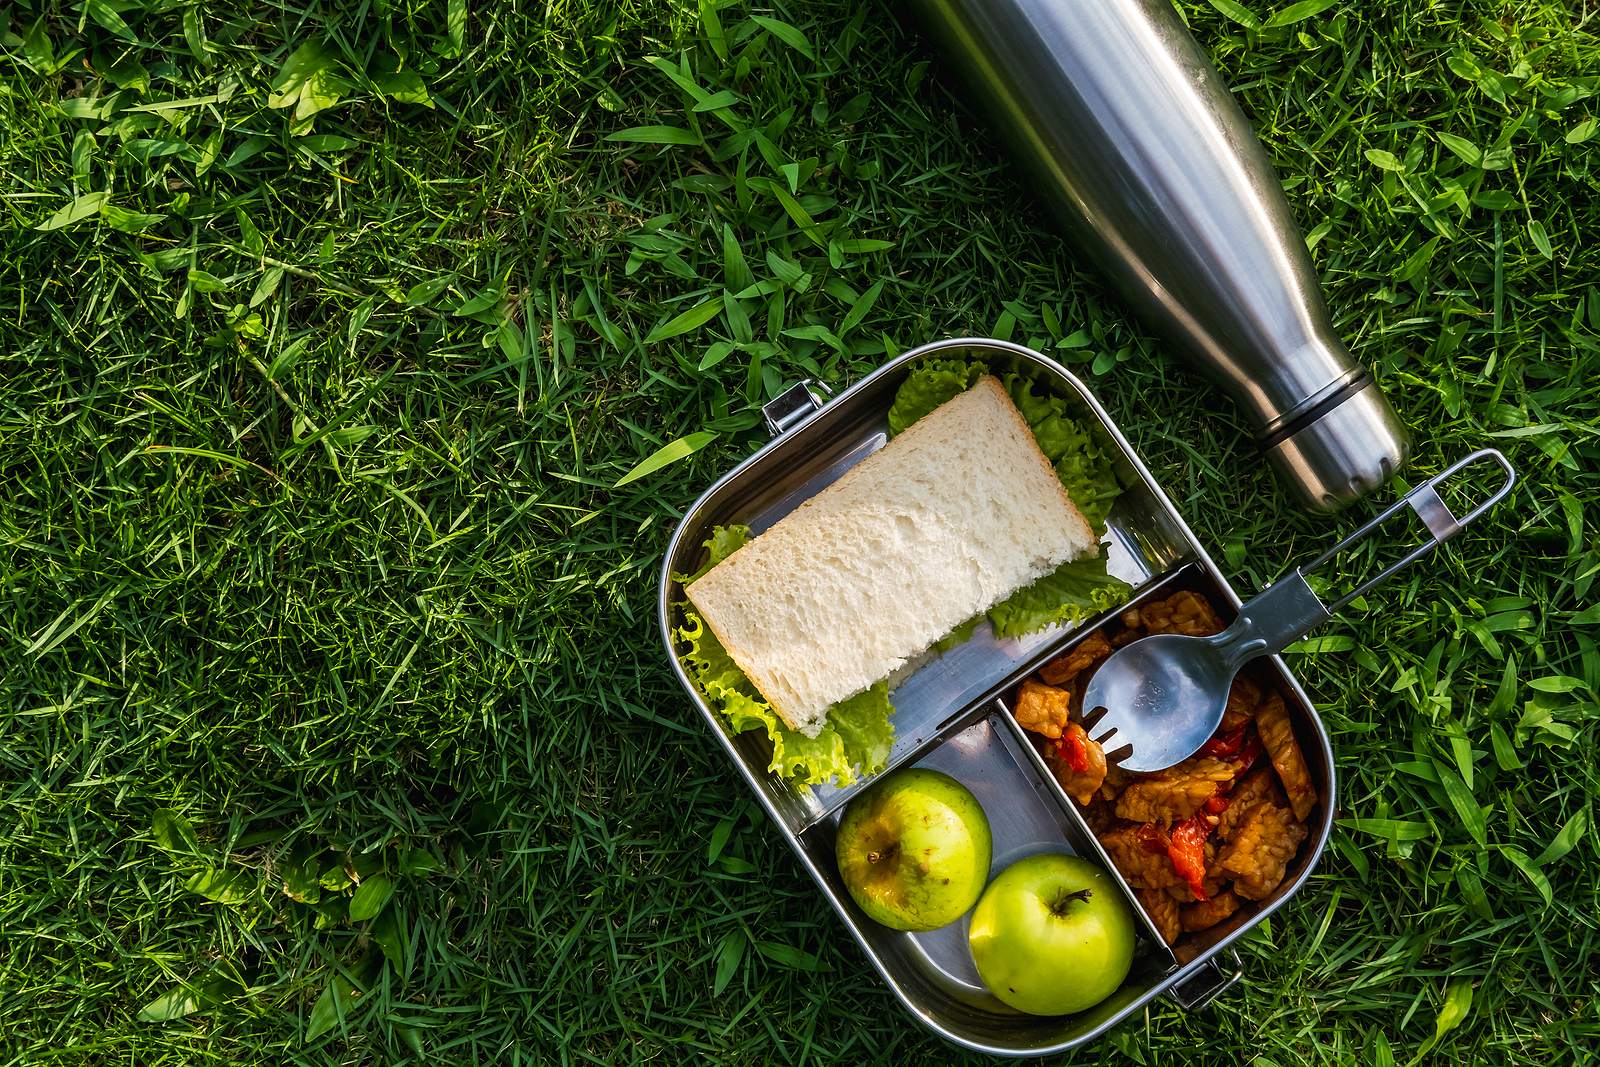 A stainless steel eco-friendly lunchbox, spork and water bottle on the grass